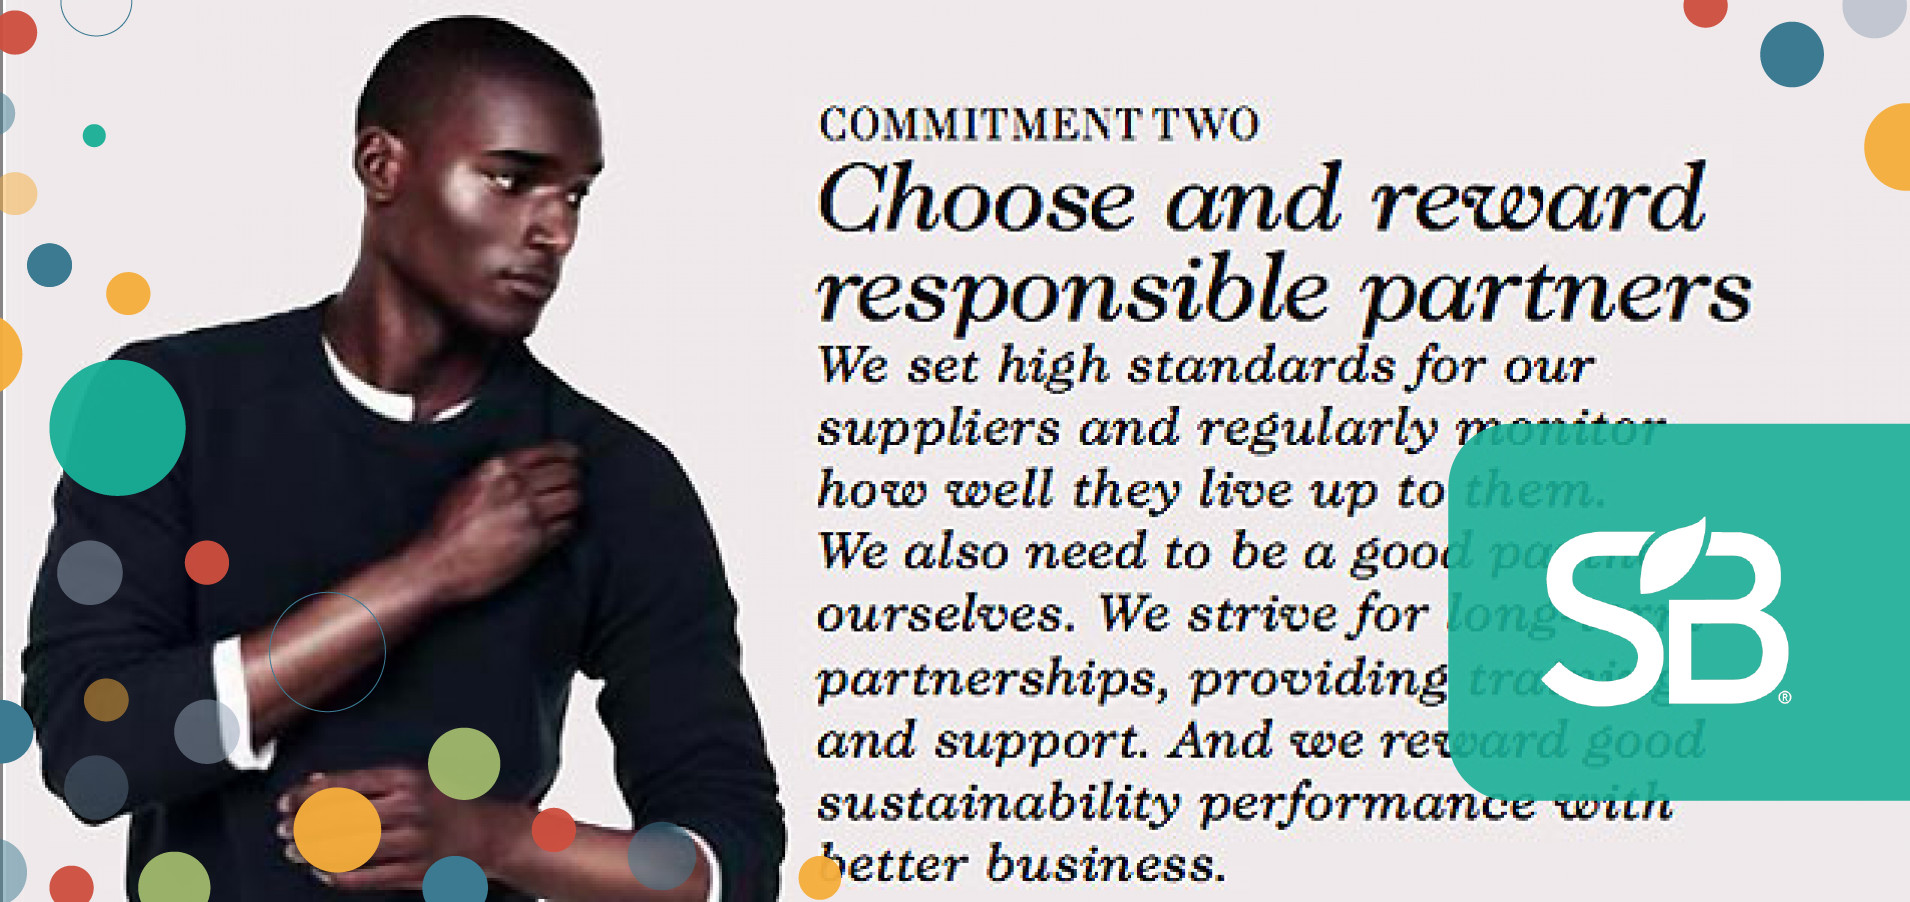 H&M Disclosing Supplier List Along with Sustainability